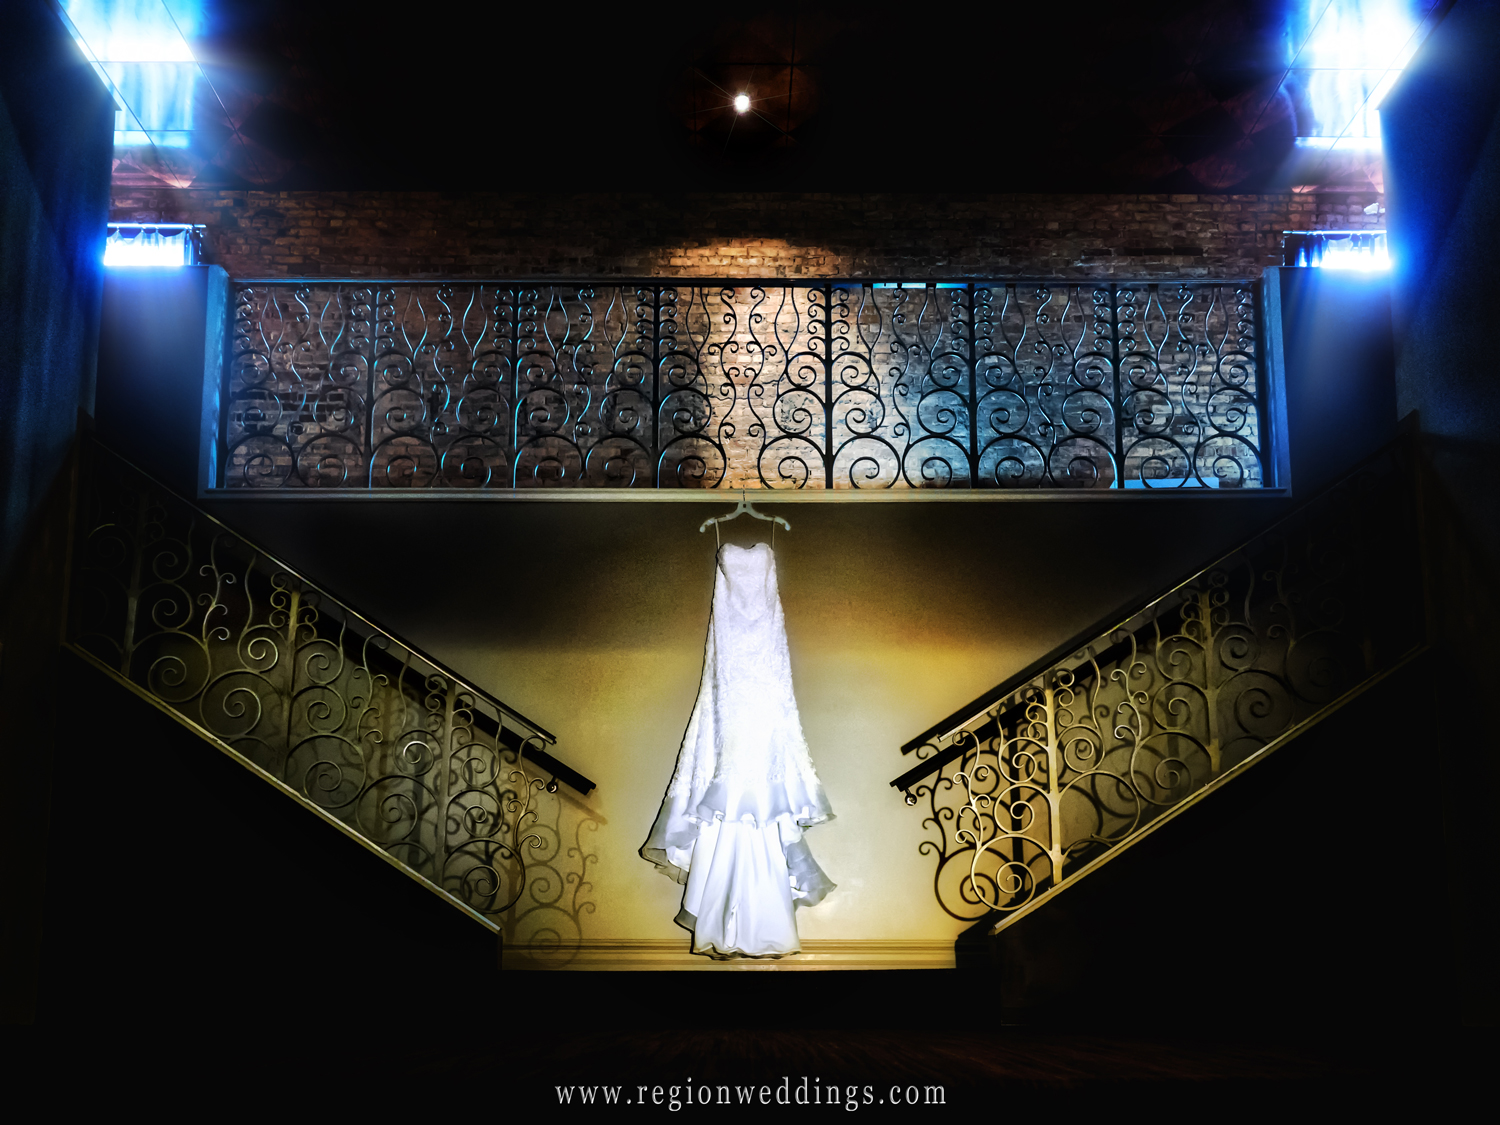 The wedding dress hangs at the bottom of the staircase at The Allure.